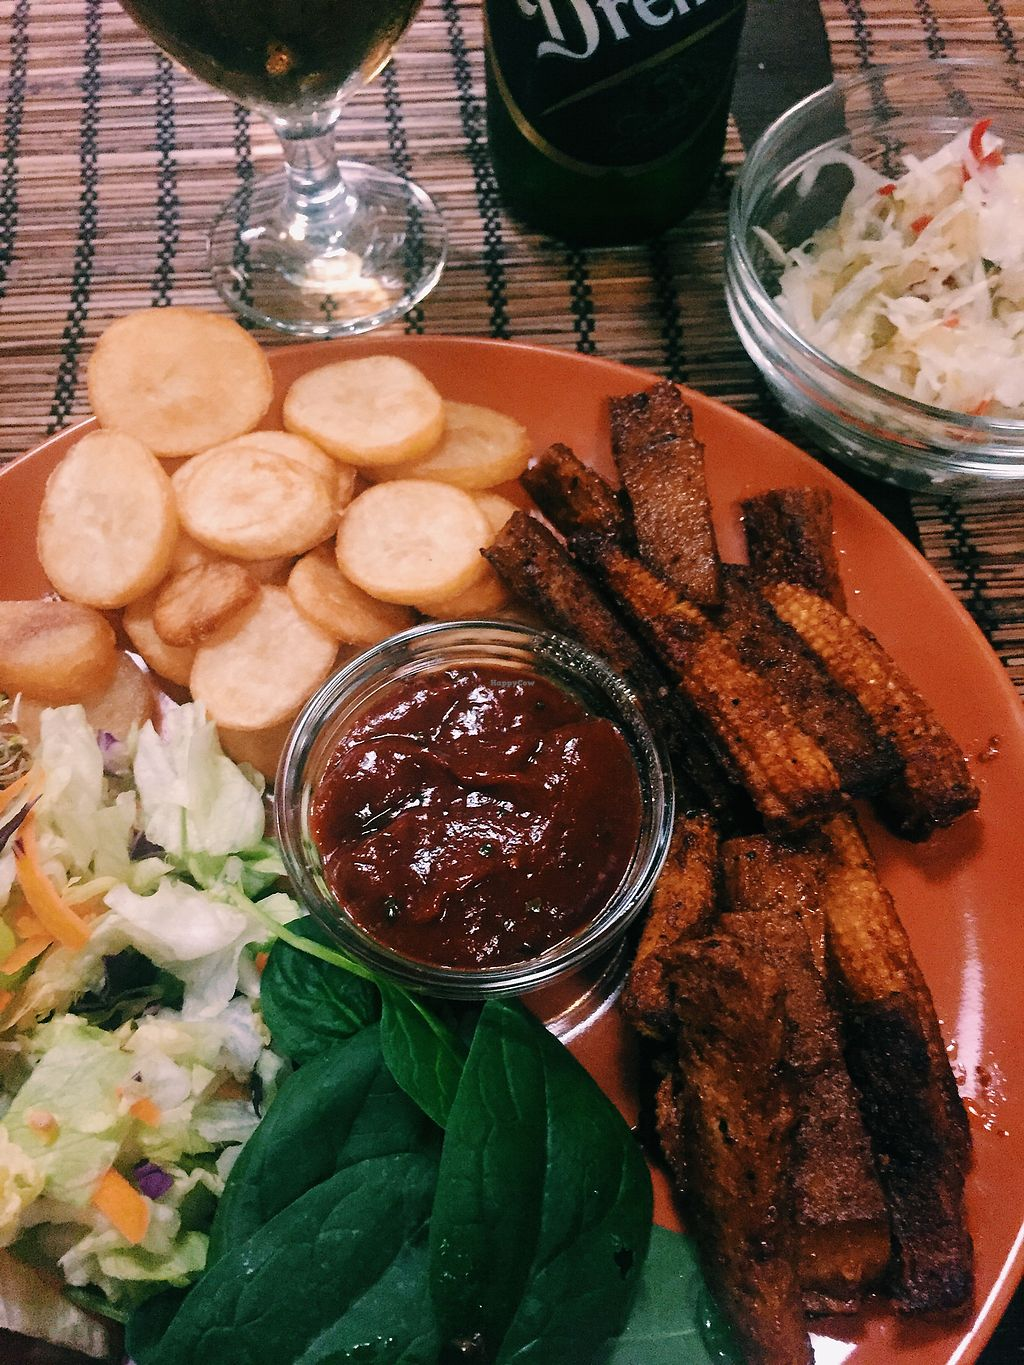 """Photo of Kozmosz Vegan Etterem  by <a href=""""/members/profile/KatjaValentinaKramp"""">KatjaValentinaKramp</a> <br/>BBQ seitan stripes with Hungarian pickles and beer  <br/> January 30, 2018  - <a href='/contact/abuse/image/46900/352813'>Report</a>"""